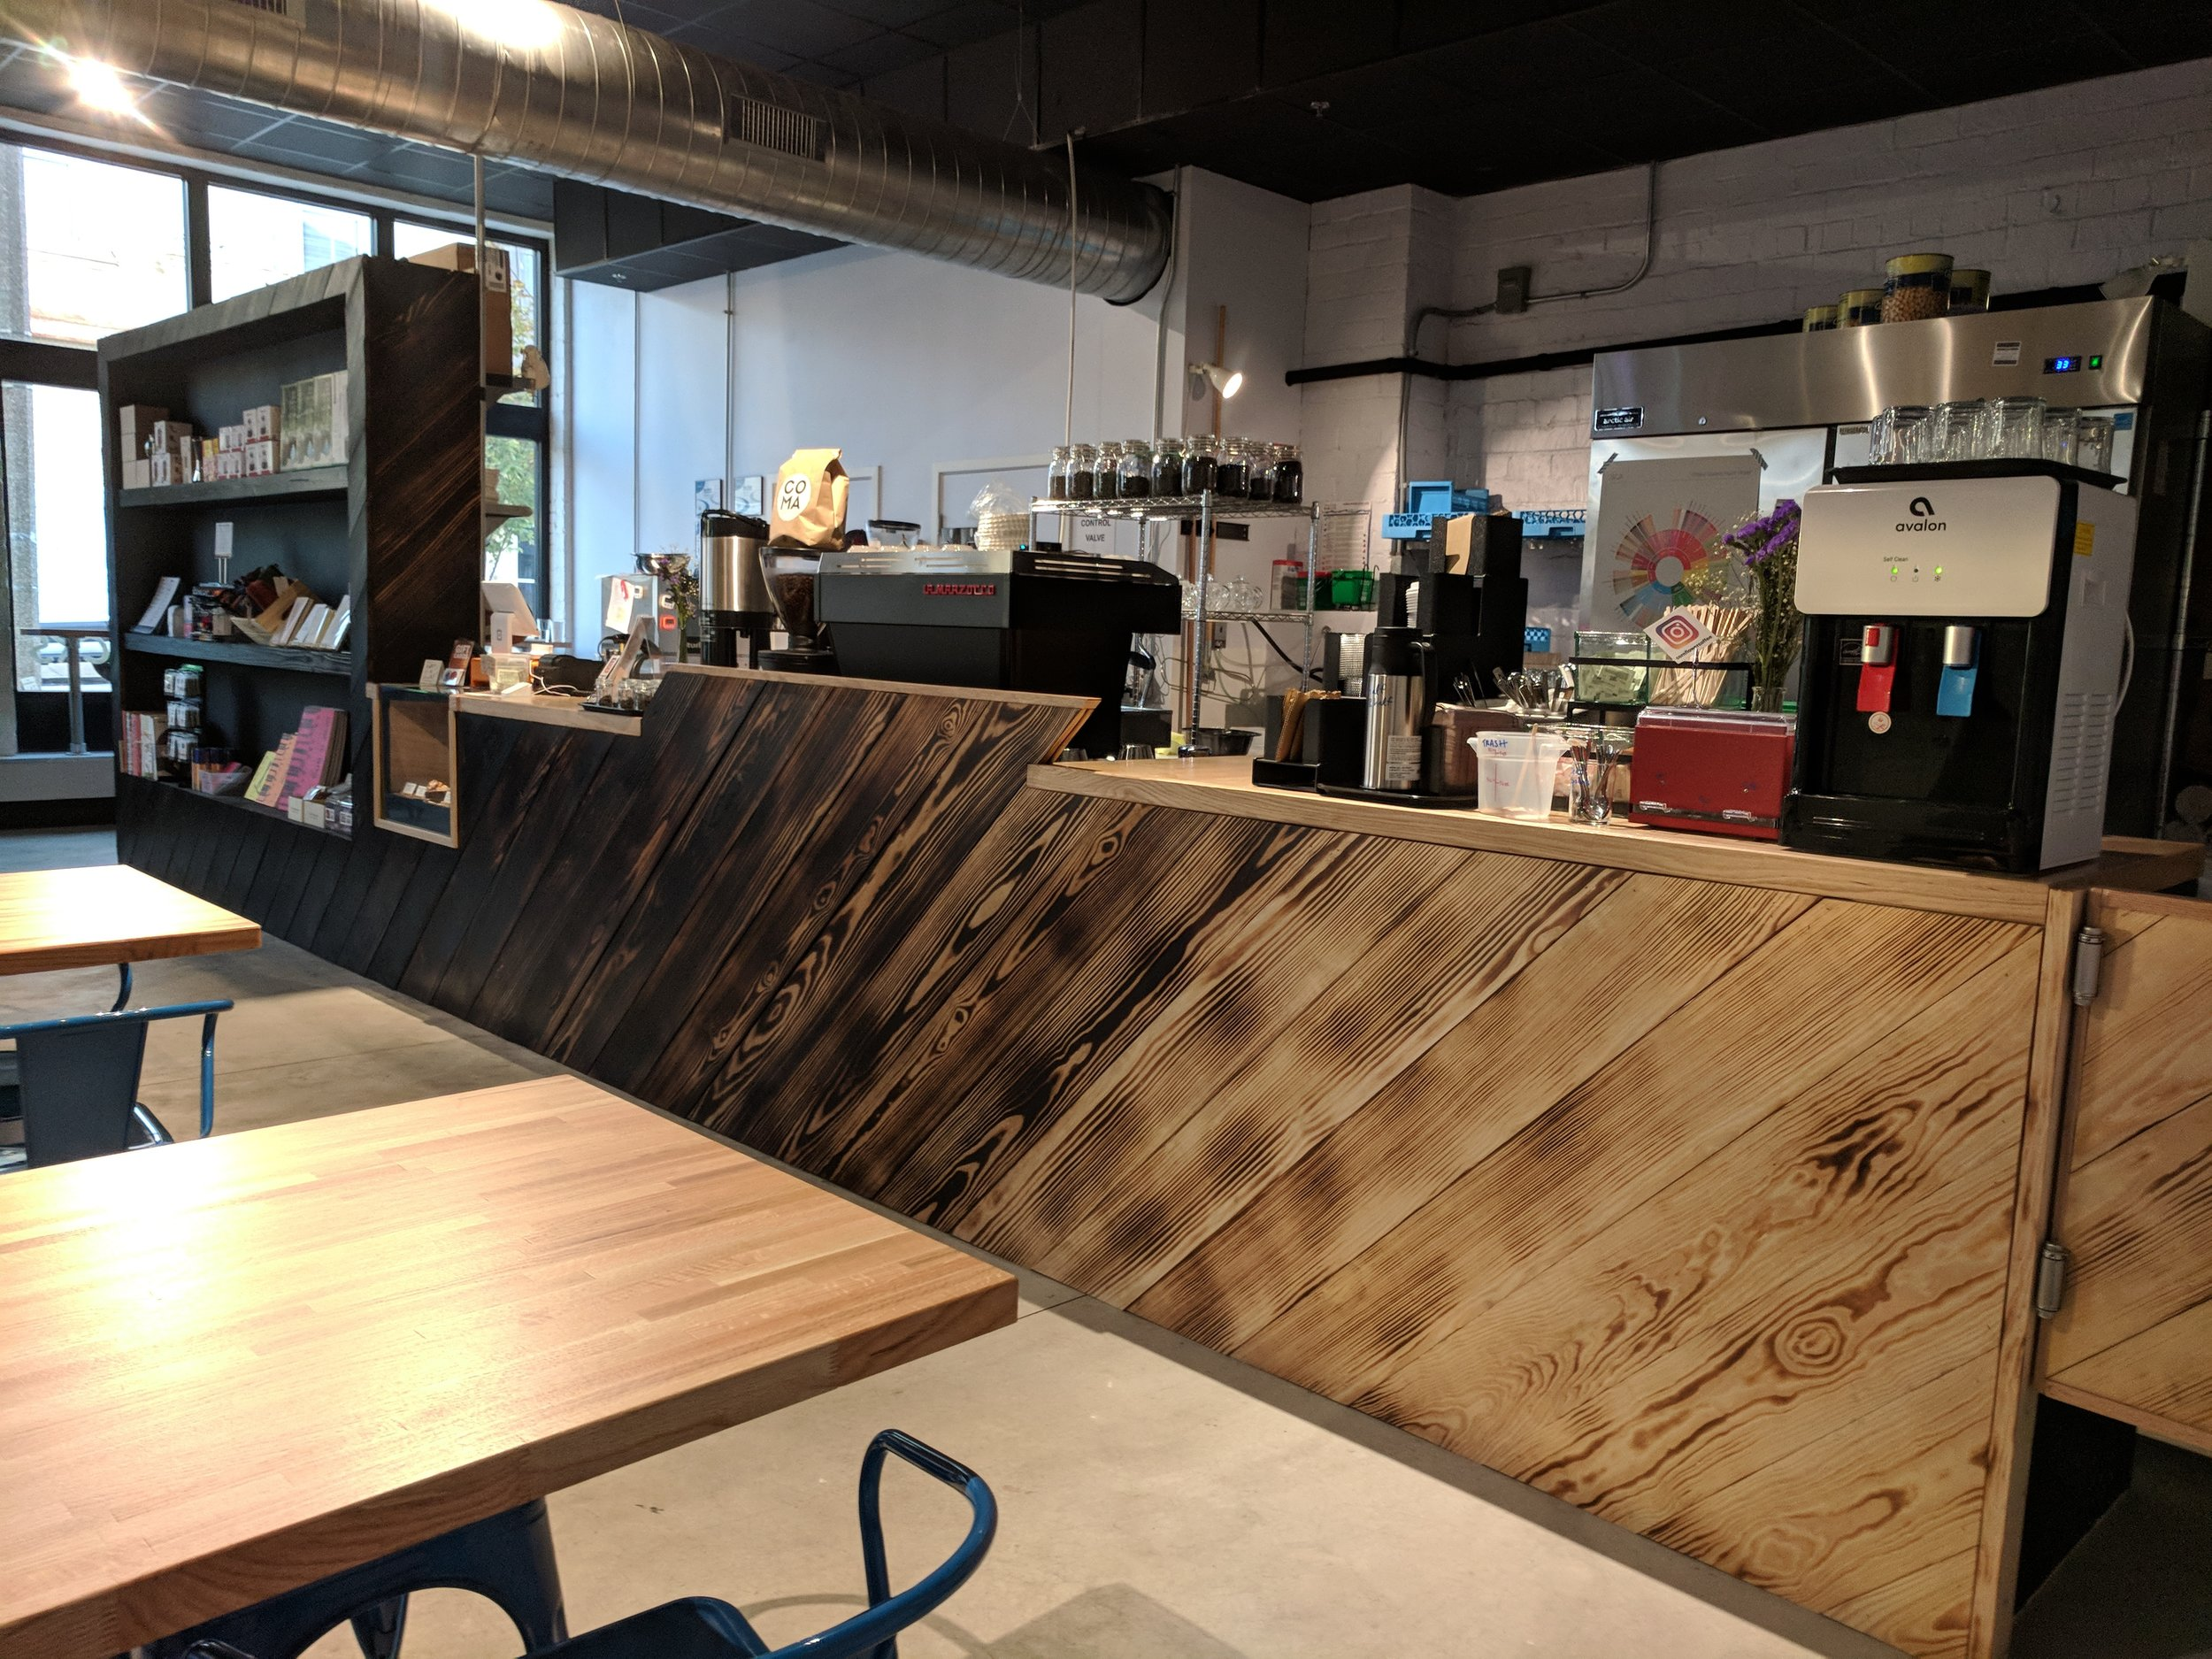 Store build-out for local business St. Louis Art Supply. We fabricated custom oak counter-tops, cabinets and shelving clad in a burnt wood gradient treatment, a pastry case, saloon doors, and office space.